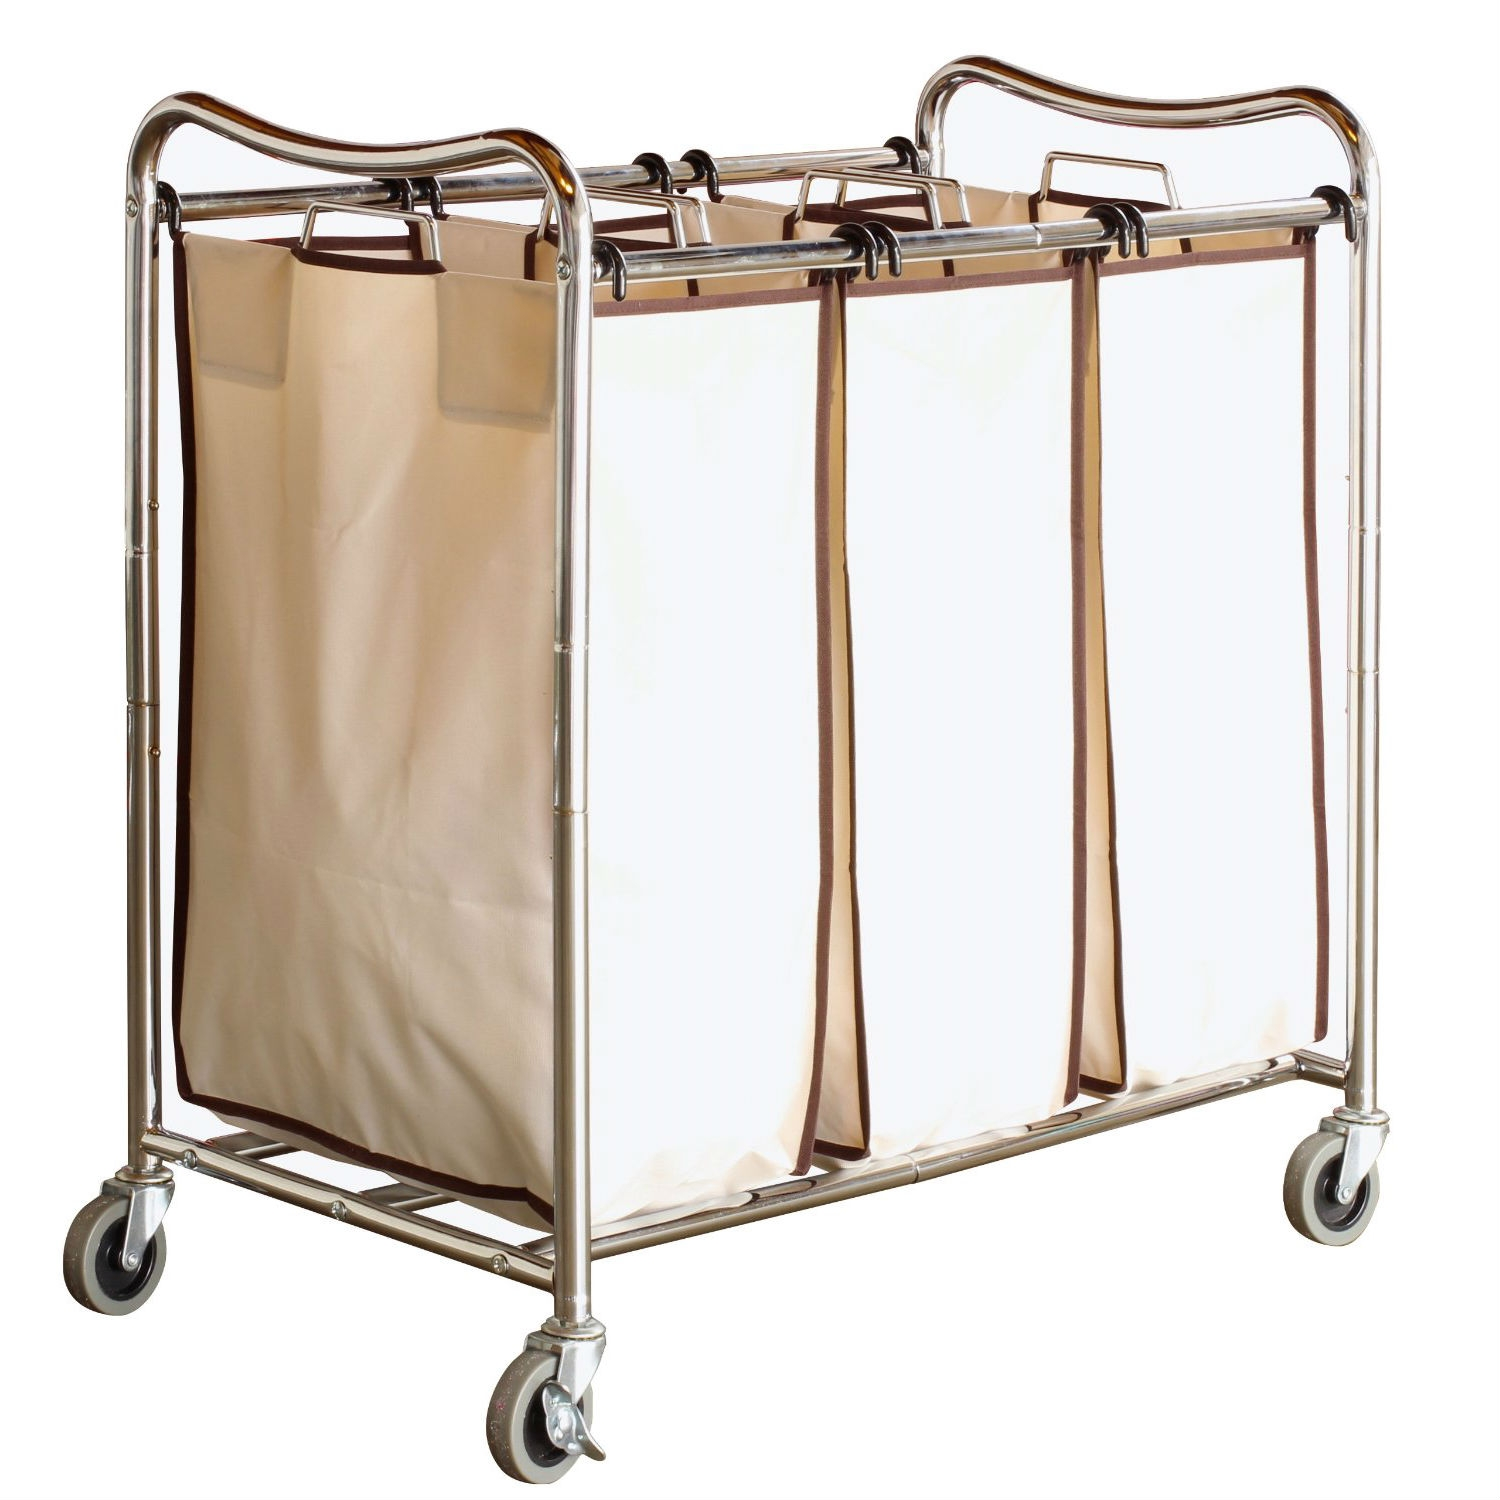 Heavy Duty 3-Bag Laundry Hamper Cart with Lockable Wheels, DBH466715 :  This Heavy Duty 3-Bag Laundry Hamper Cart with Lockable Wheels help you to sort different types, color of clothes. Each bag made by 100% canvas bags.